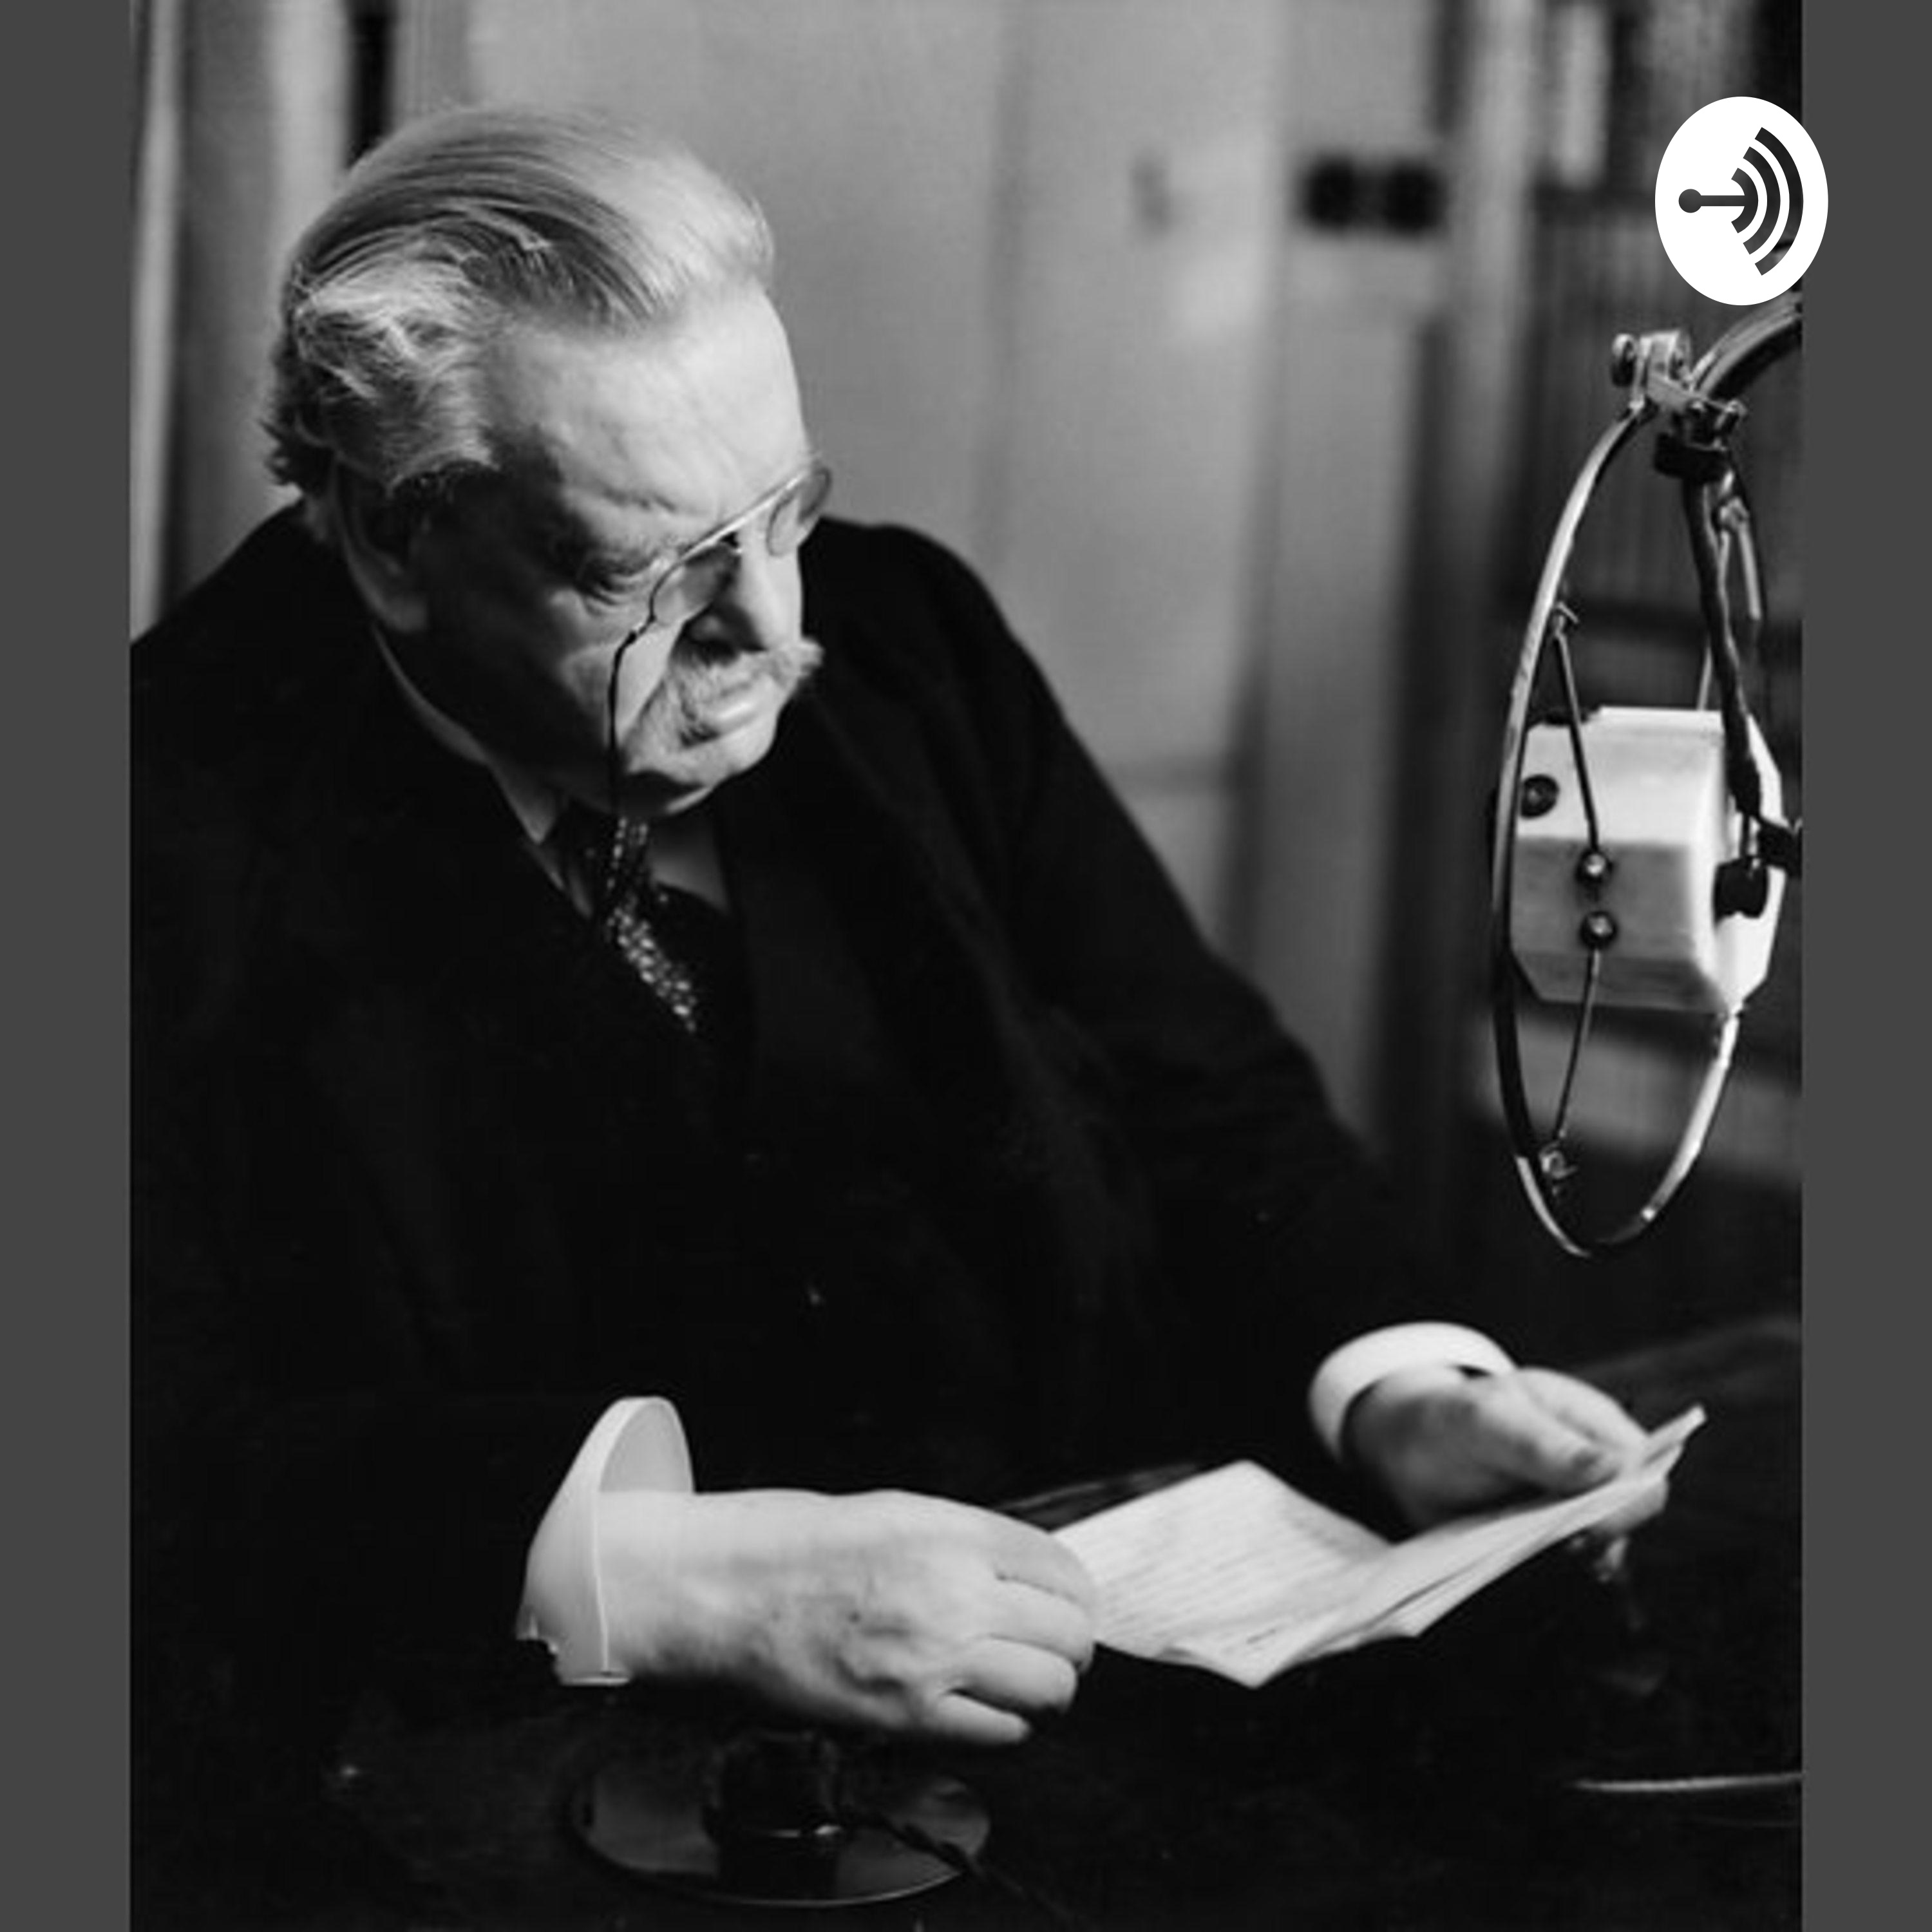 Benny and Chesterton Morning Show Podcast - Jack Visits Halls of Ivy - Phil Harris-Alice Fay Show - Will Jack Renew Phil's Contract? - Chesterton Heretics - Importance of Orthodoxy - Negative Spirit